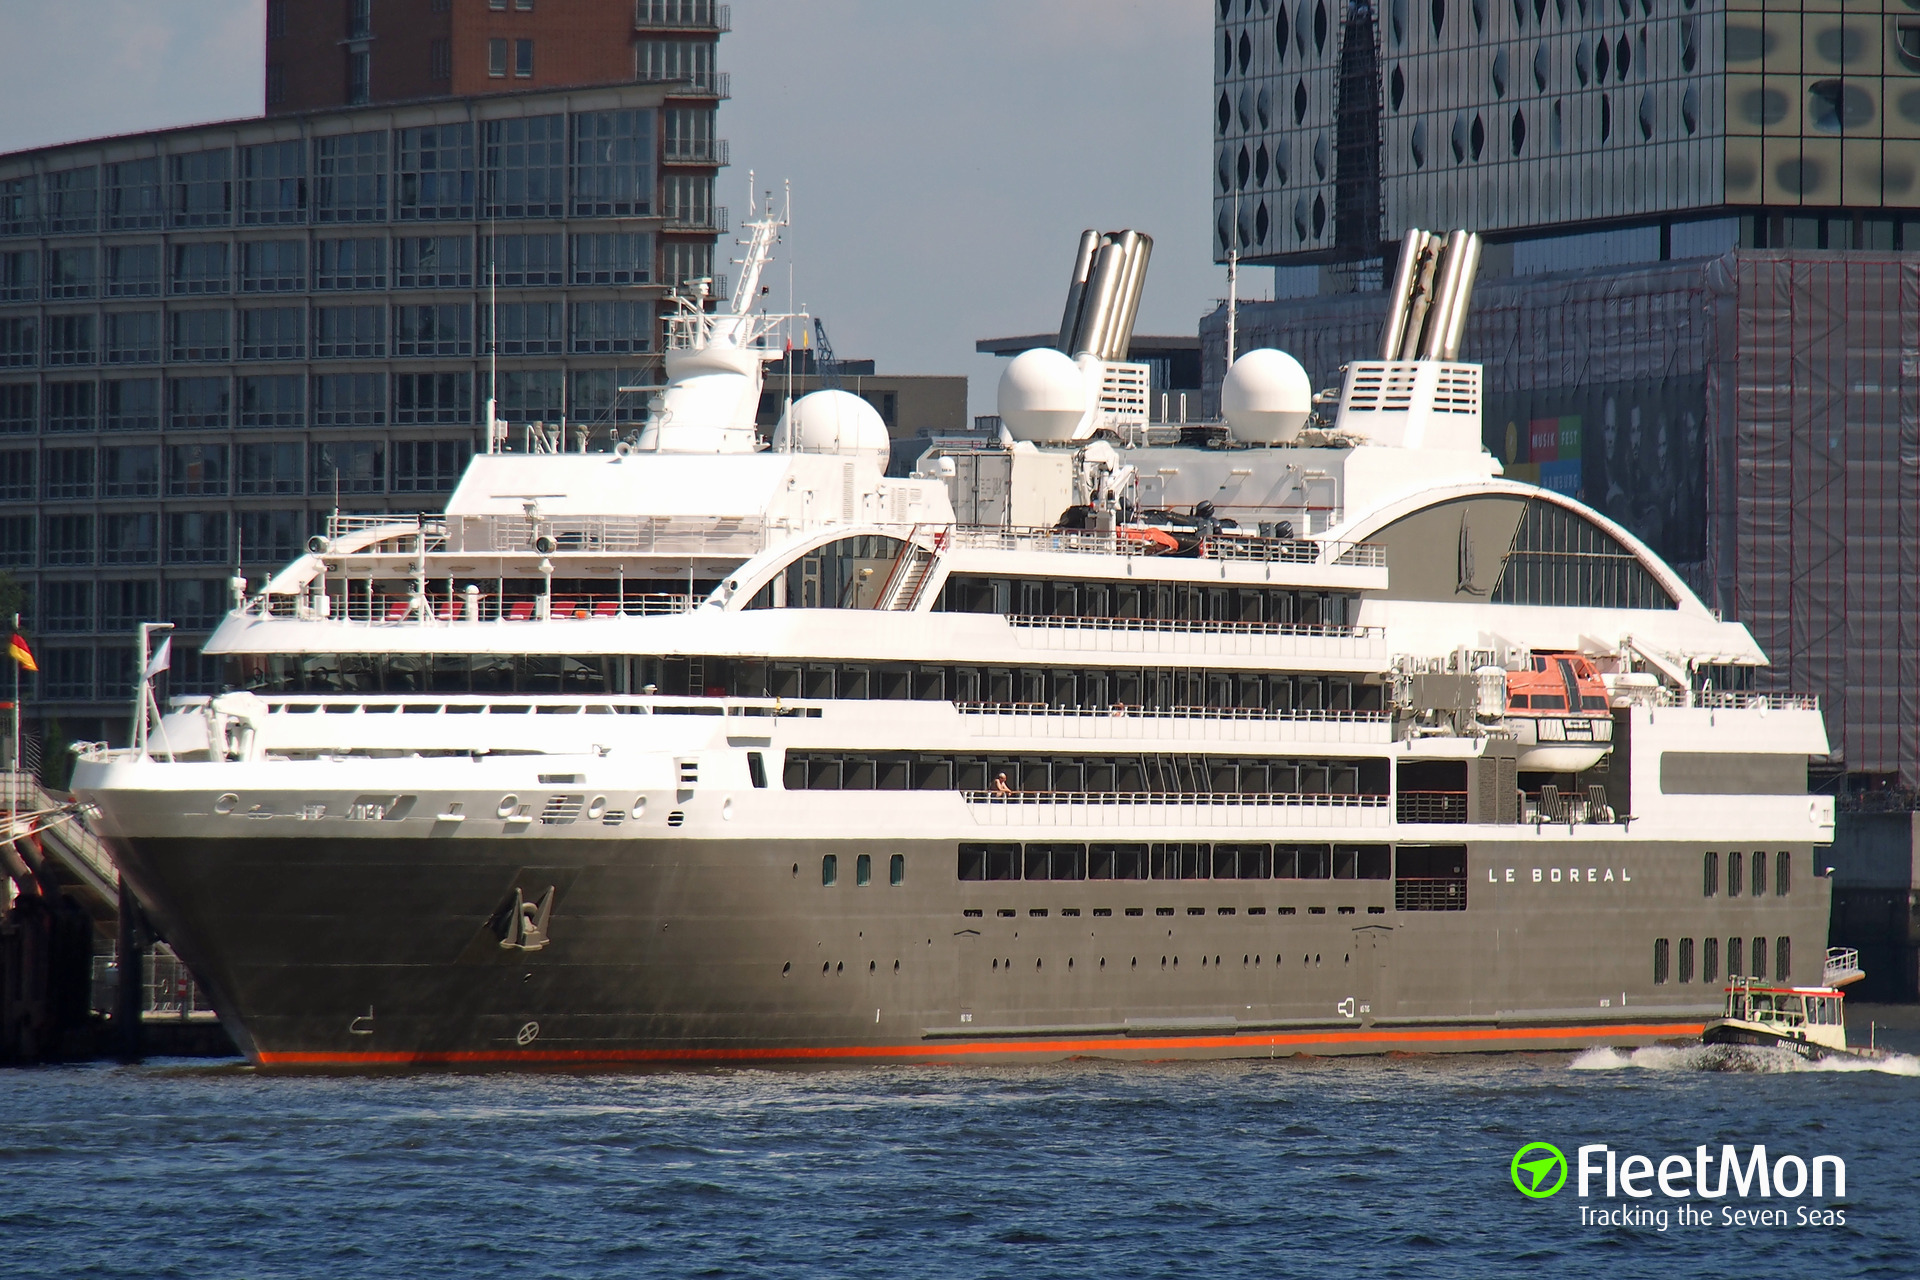 Cruise ship LE BOREAL fire in South Atlantic, passengers and part of crew evacuated